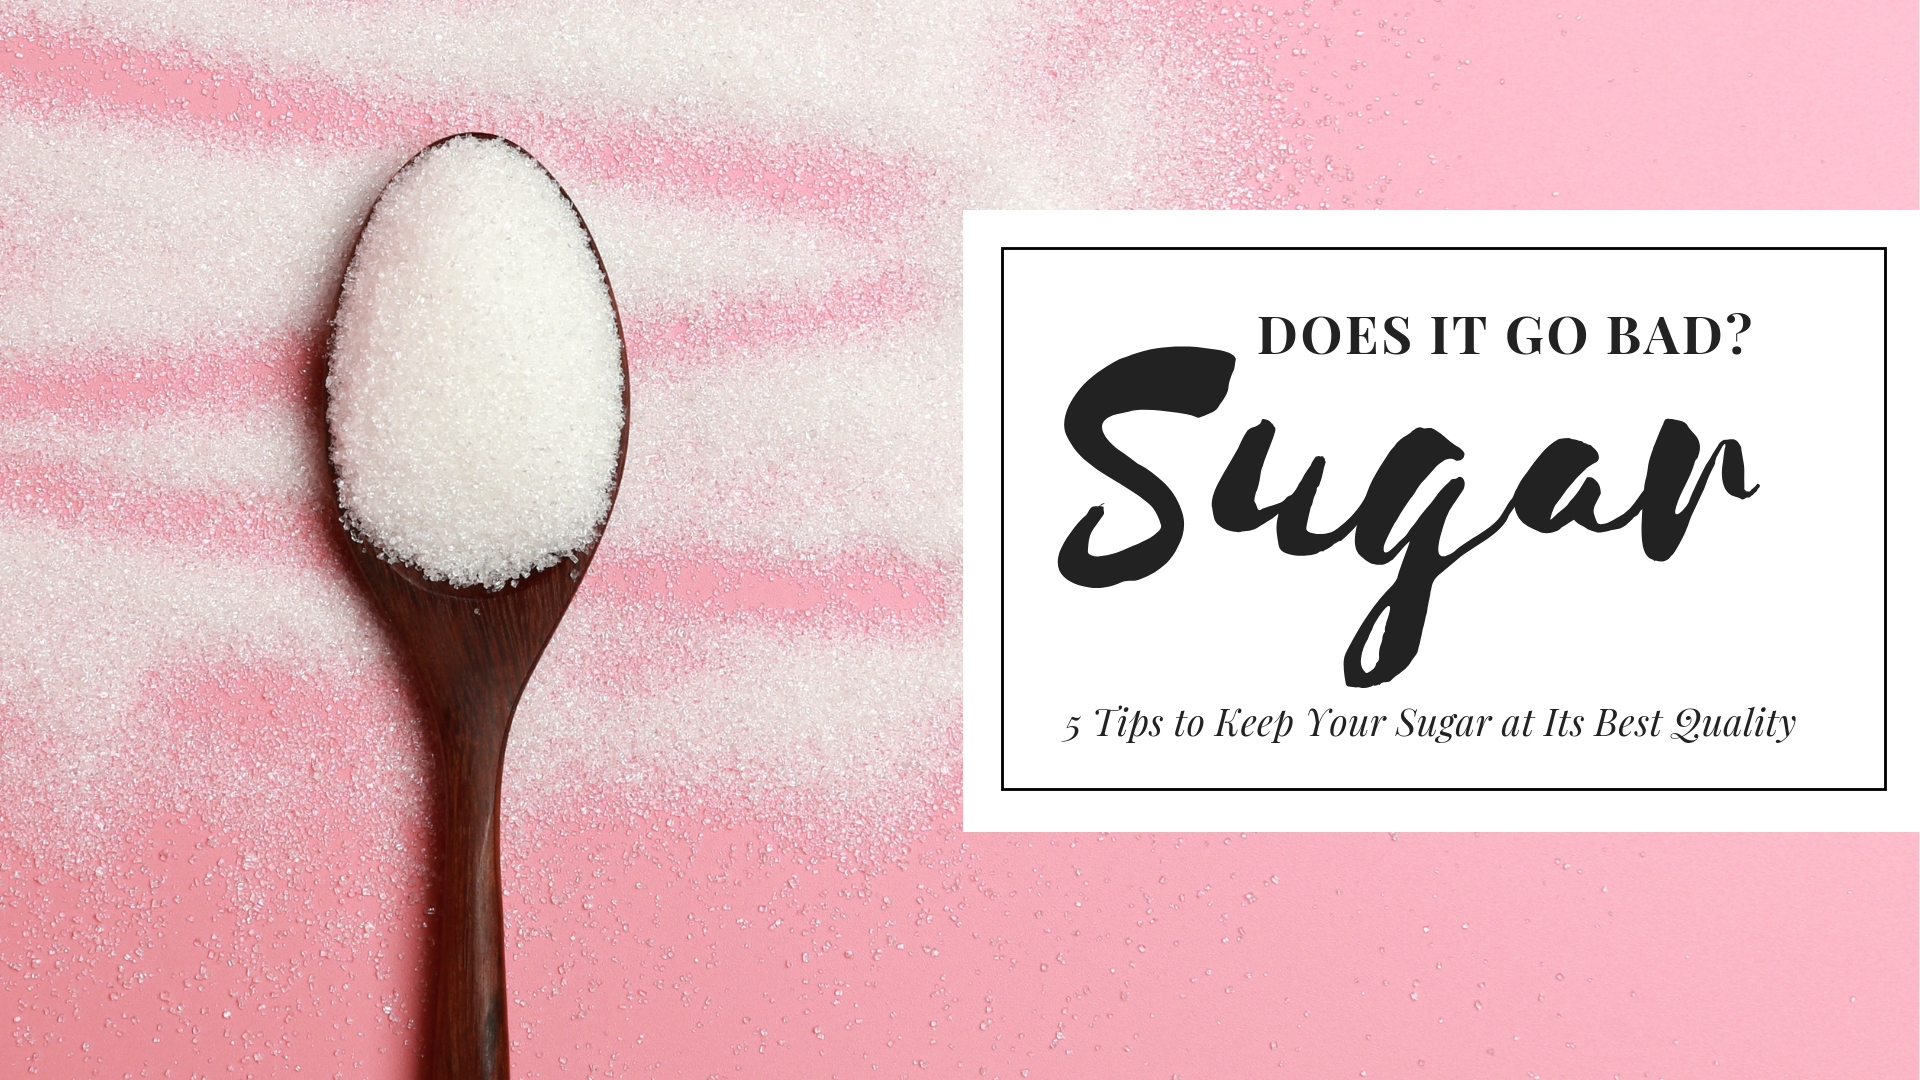 Does Sugar Go Bad? 5 Tips to Keep Your Sugar at Its Best Quality